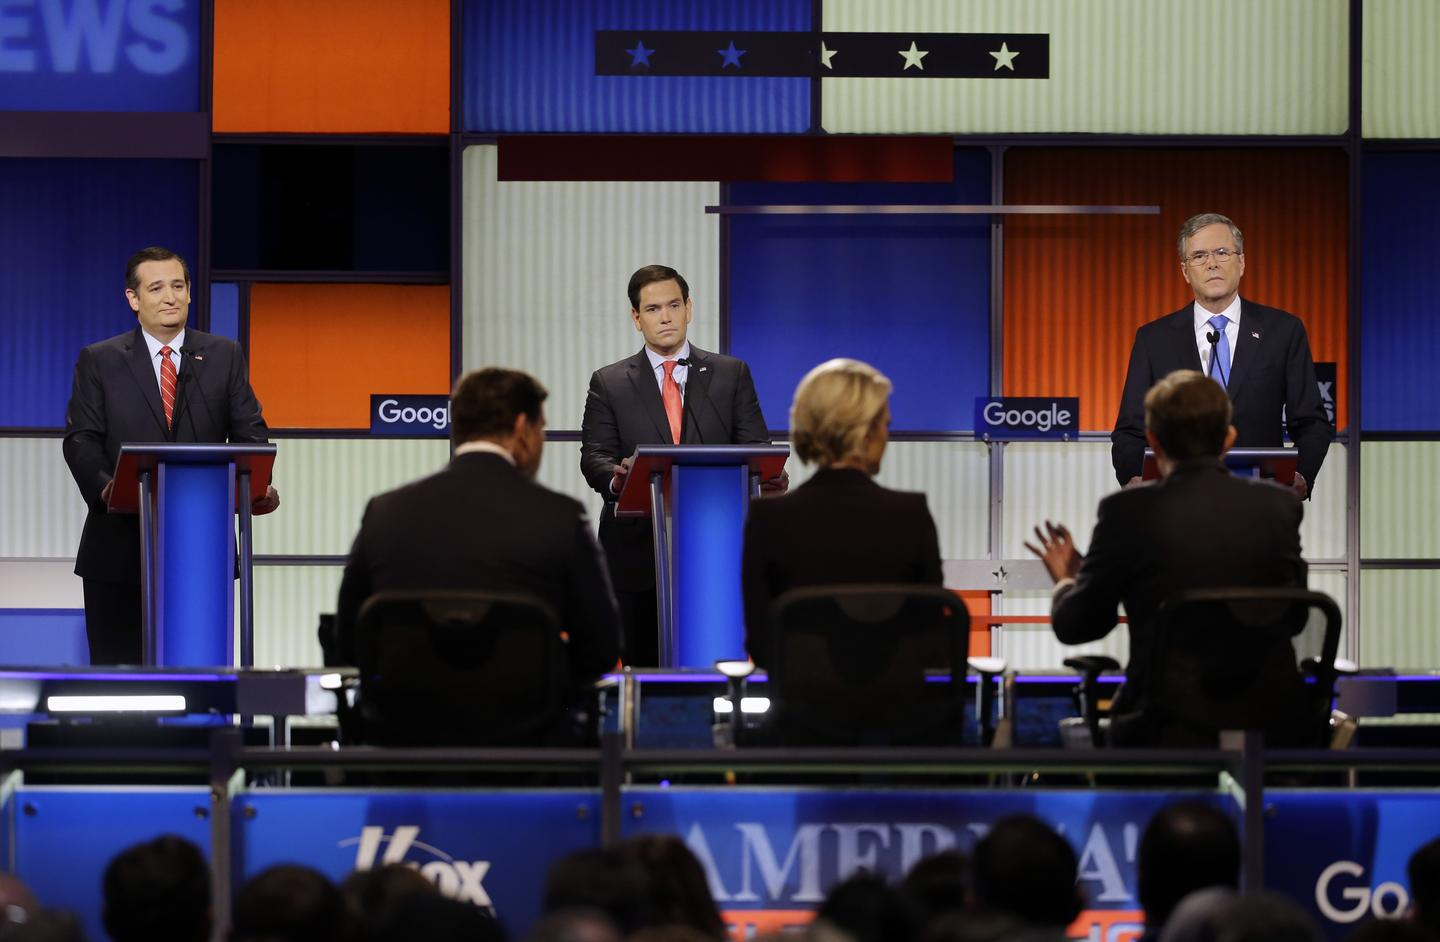 GOP Debate Jan. 28, 2016, Ted Cruz, Marco Rubio, Jeb Bush, Fox News